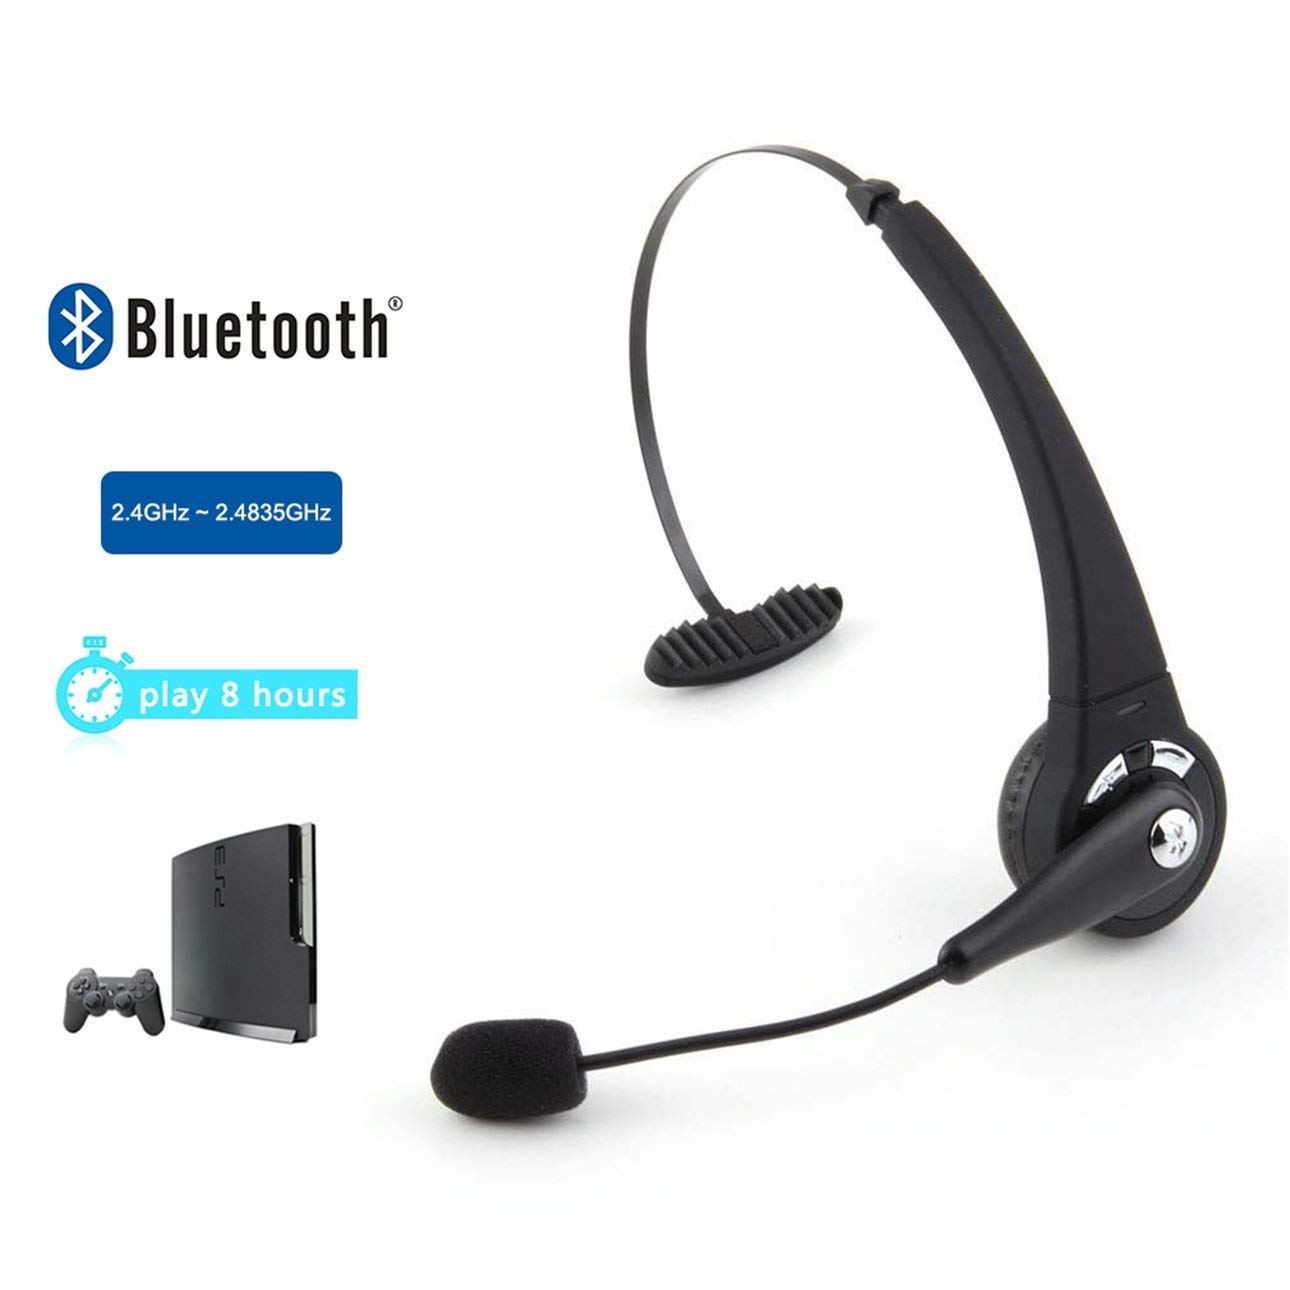 Liobaba Gaming Bluetooth Wireless Headset Headphone Earphone Stereo Sound Fit for Sony Playstation 3 PS3 with Microphone